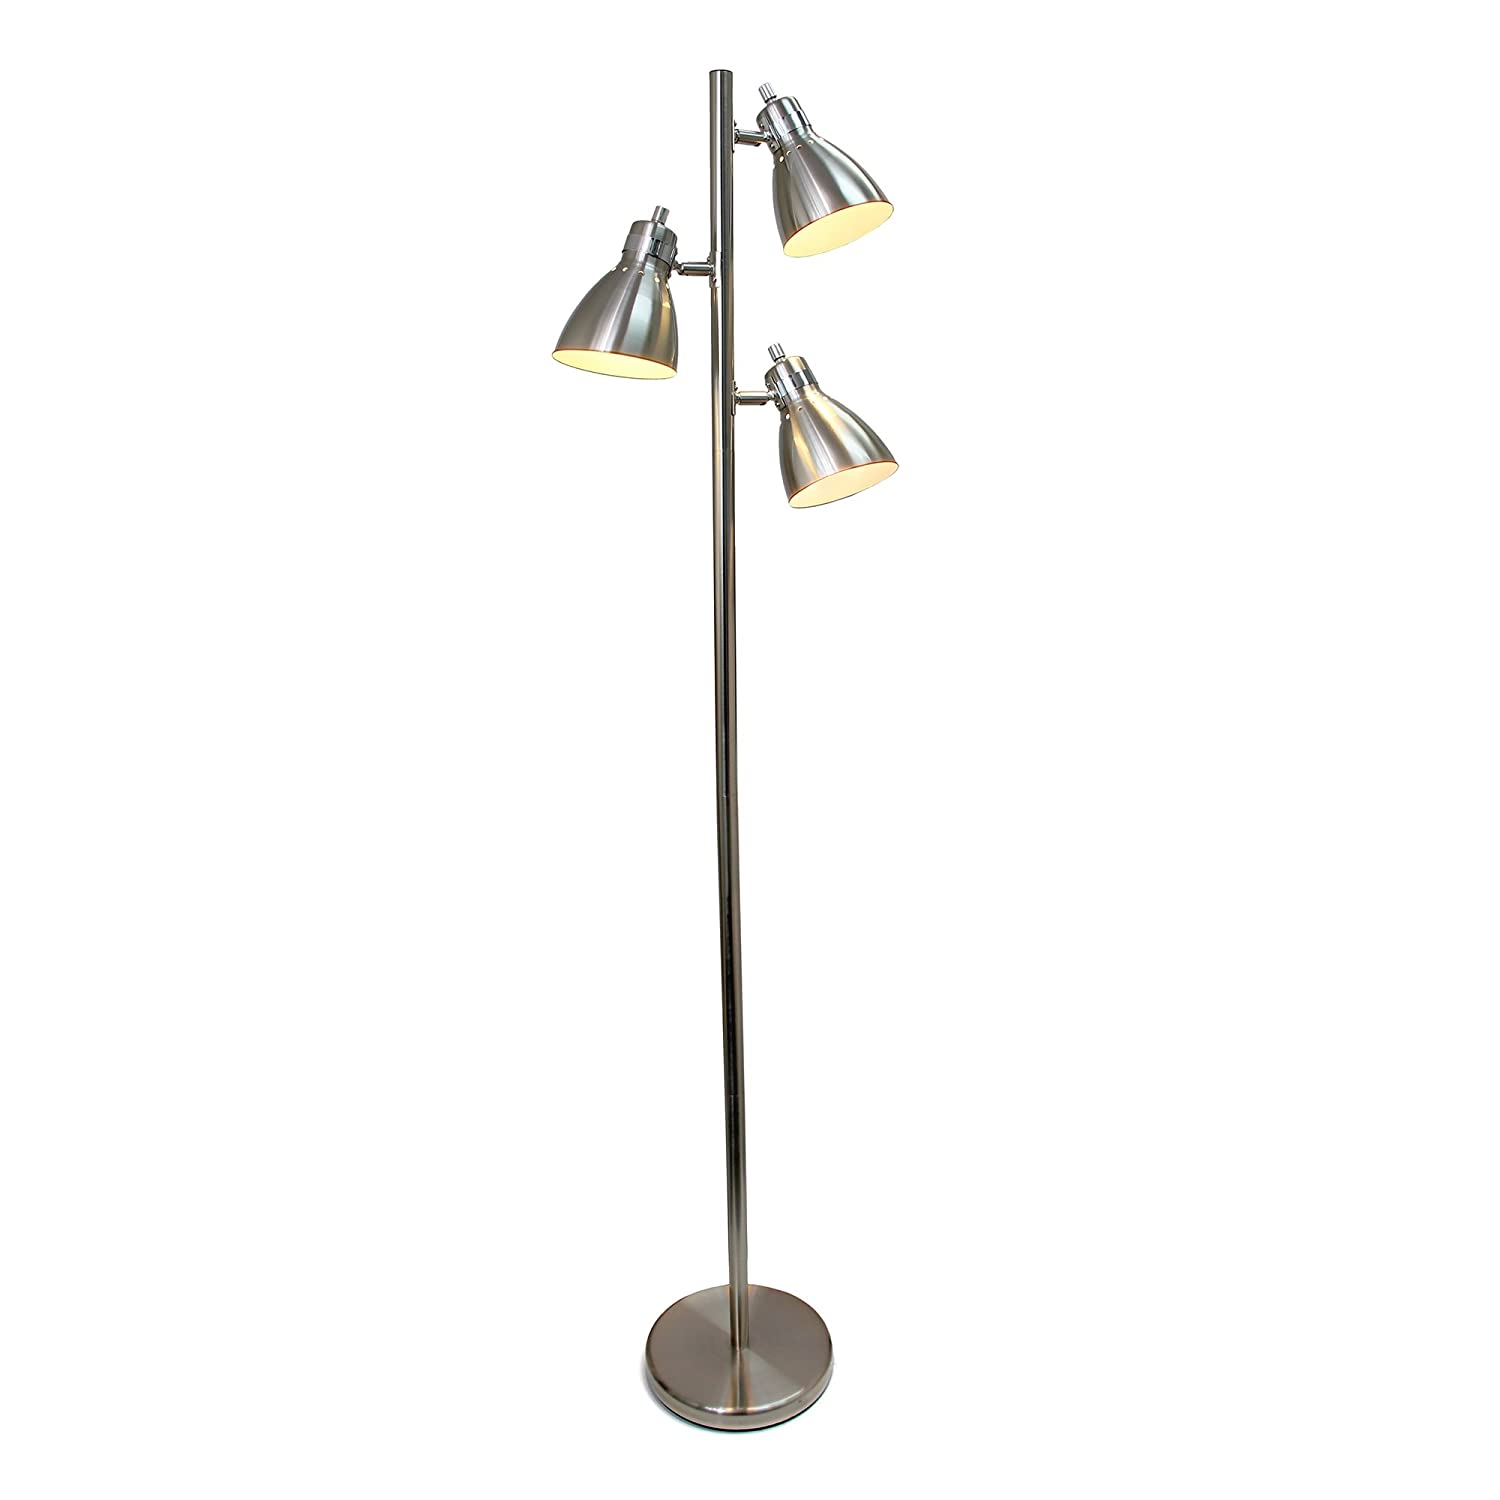 Simple Designs Home LF2007-BSN Simple Designs Metal 3-Light Tree Floor Lamp, Brushed Nickel Finish